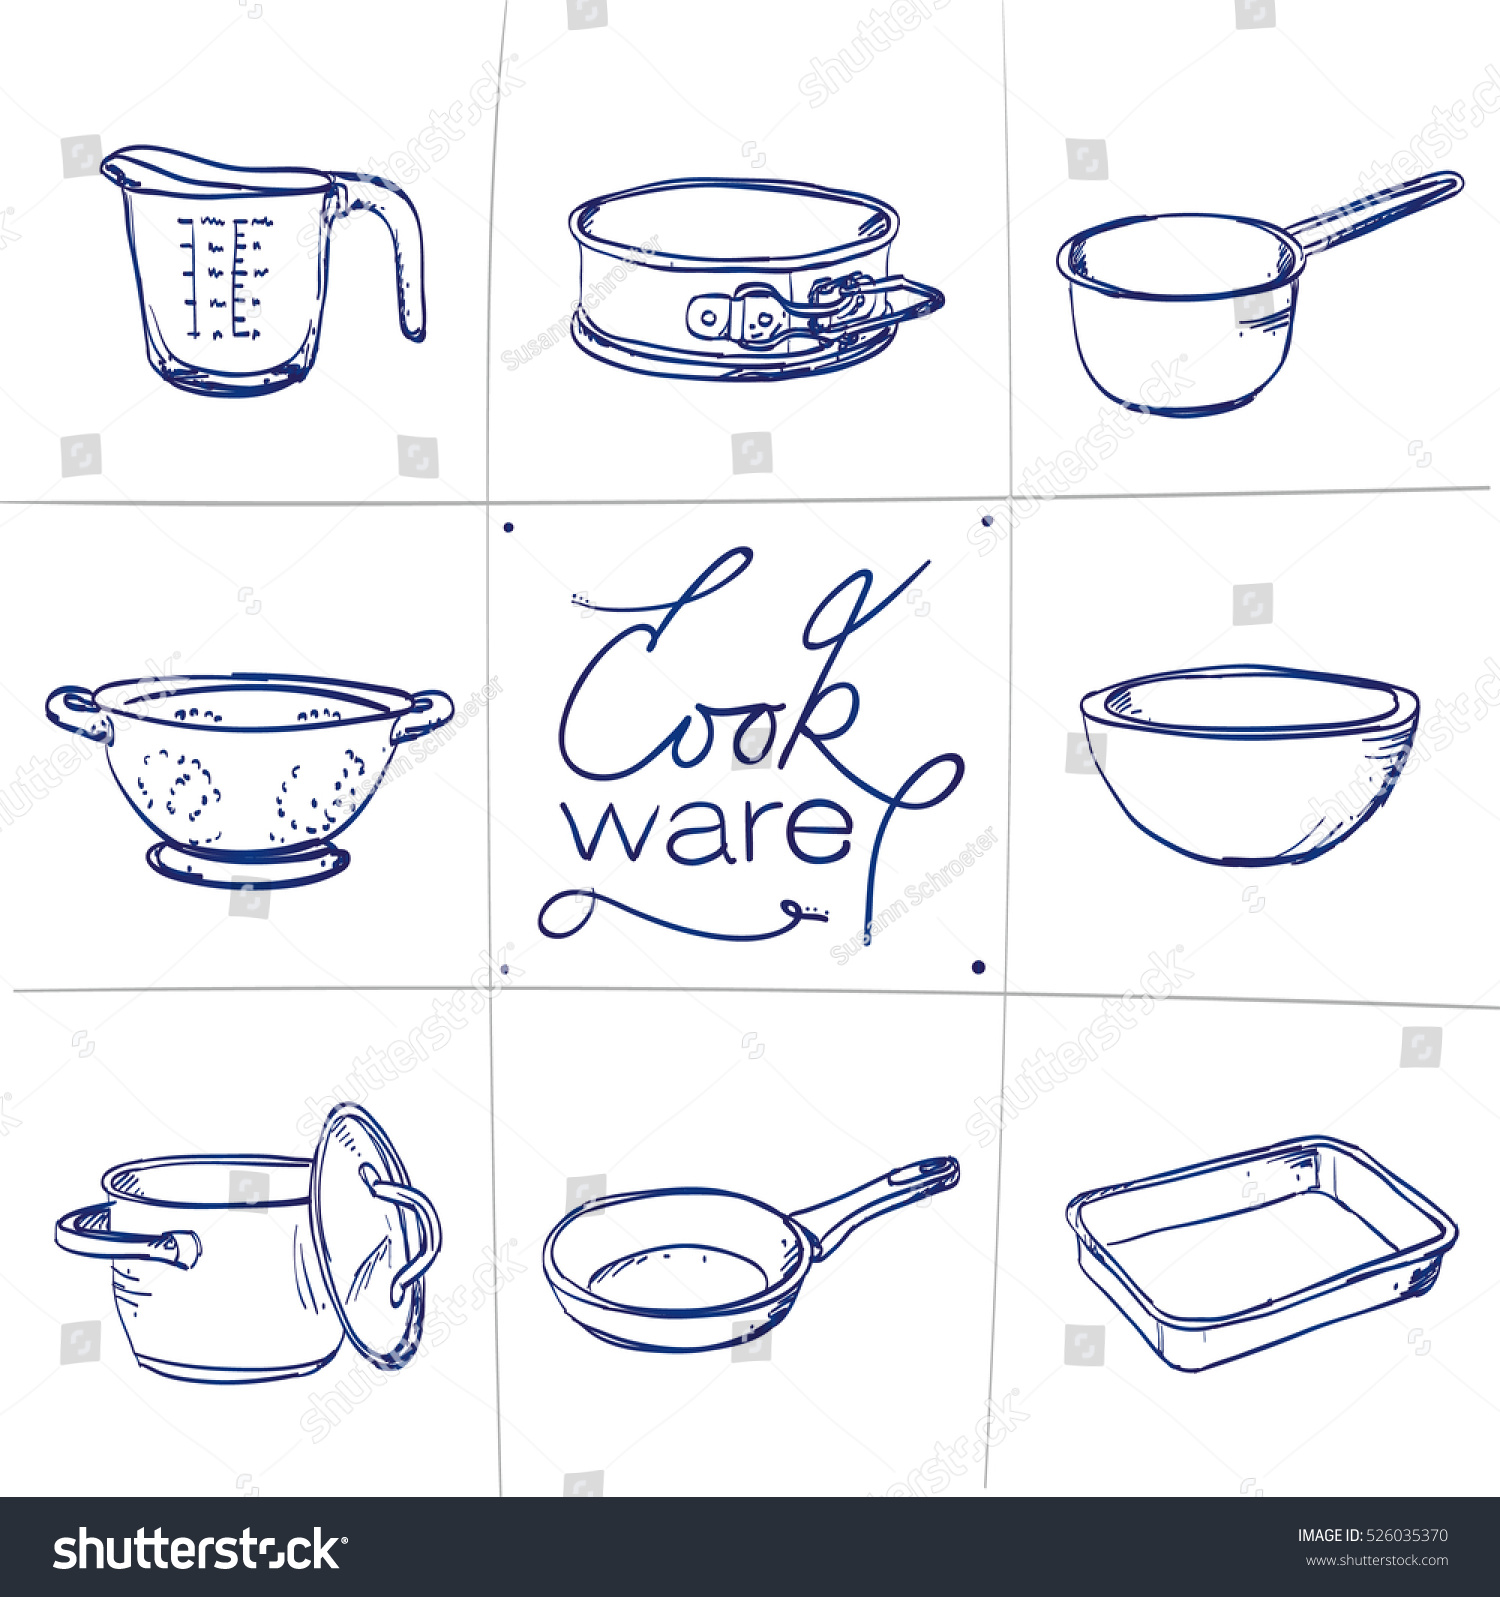 Doodle set kitchen cook ware measuring stock vector for Kitchen set drawing